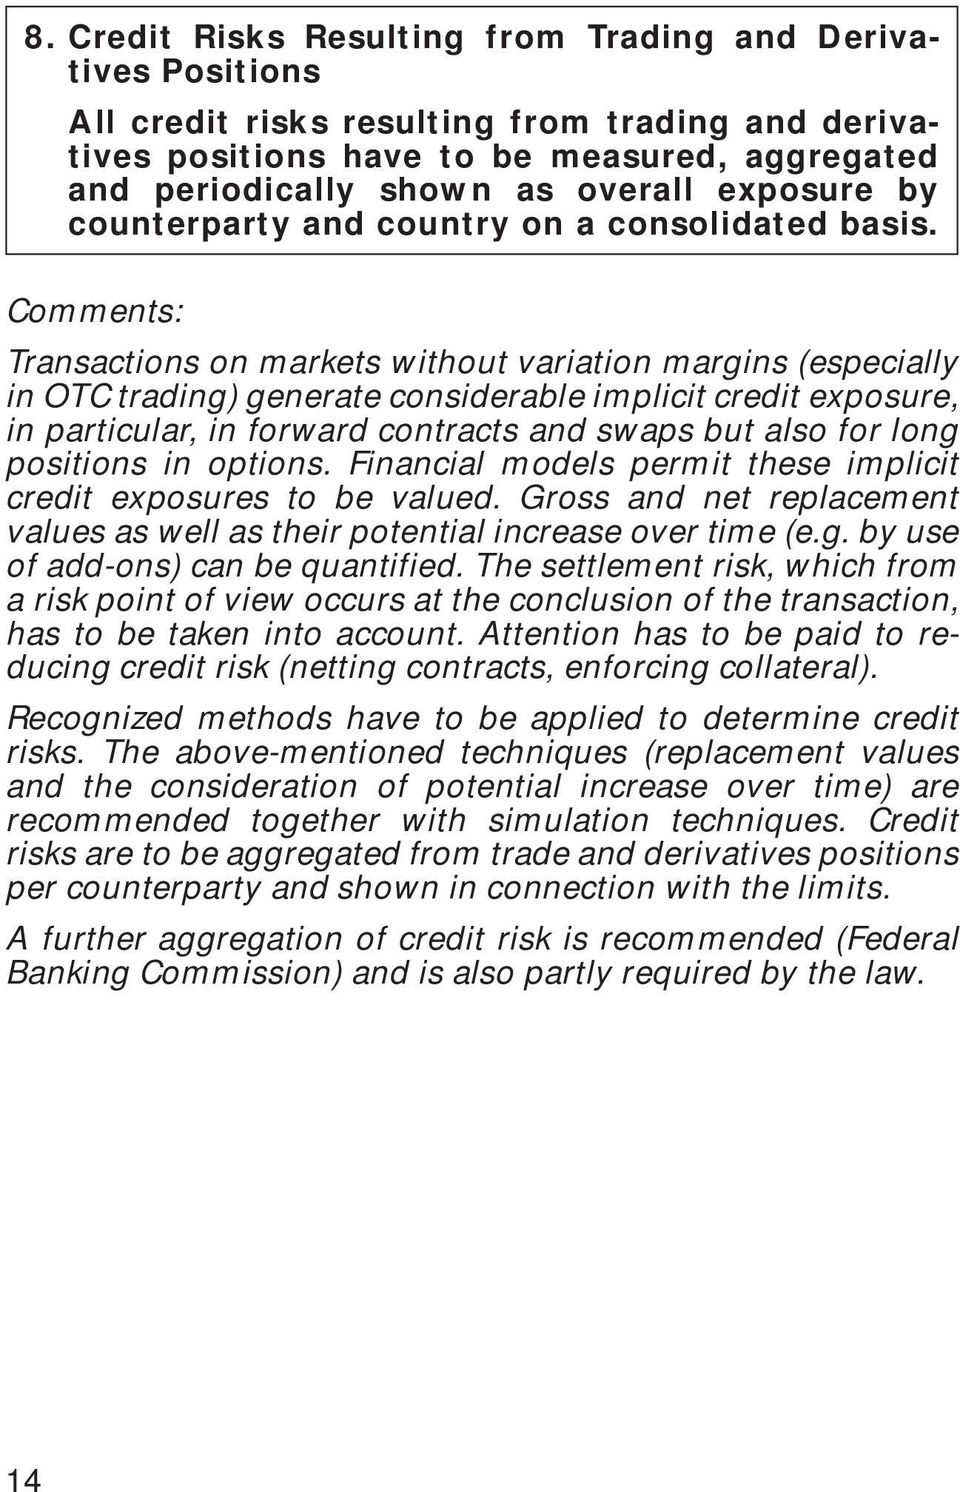 Comments: Transactions on markets without variation margins (especially in OTC trading) generate considerable implicit credit exposure, in particular, in forward contracts and swaps but also for long